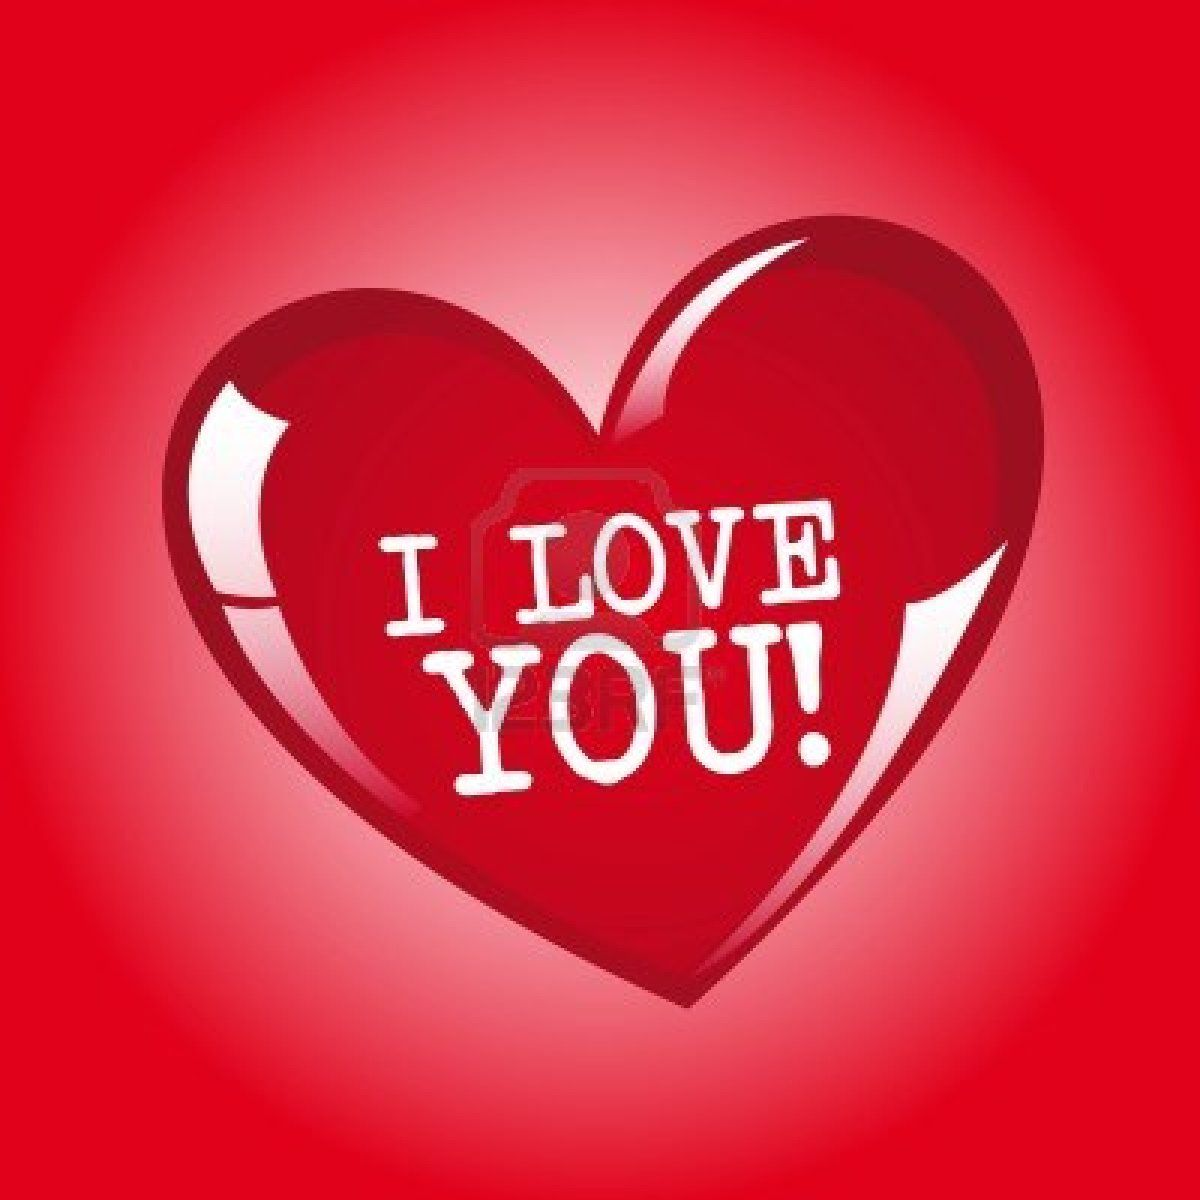 Love Messages Wallpaper Gallery : Happy Valentine Day I Love You Proposing Pictures 2015 clip Art/Graphics Pinterest ...